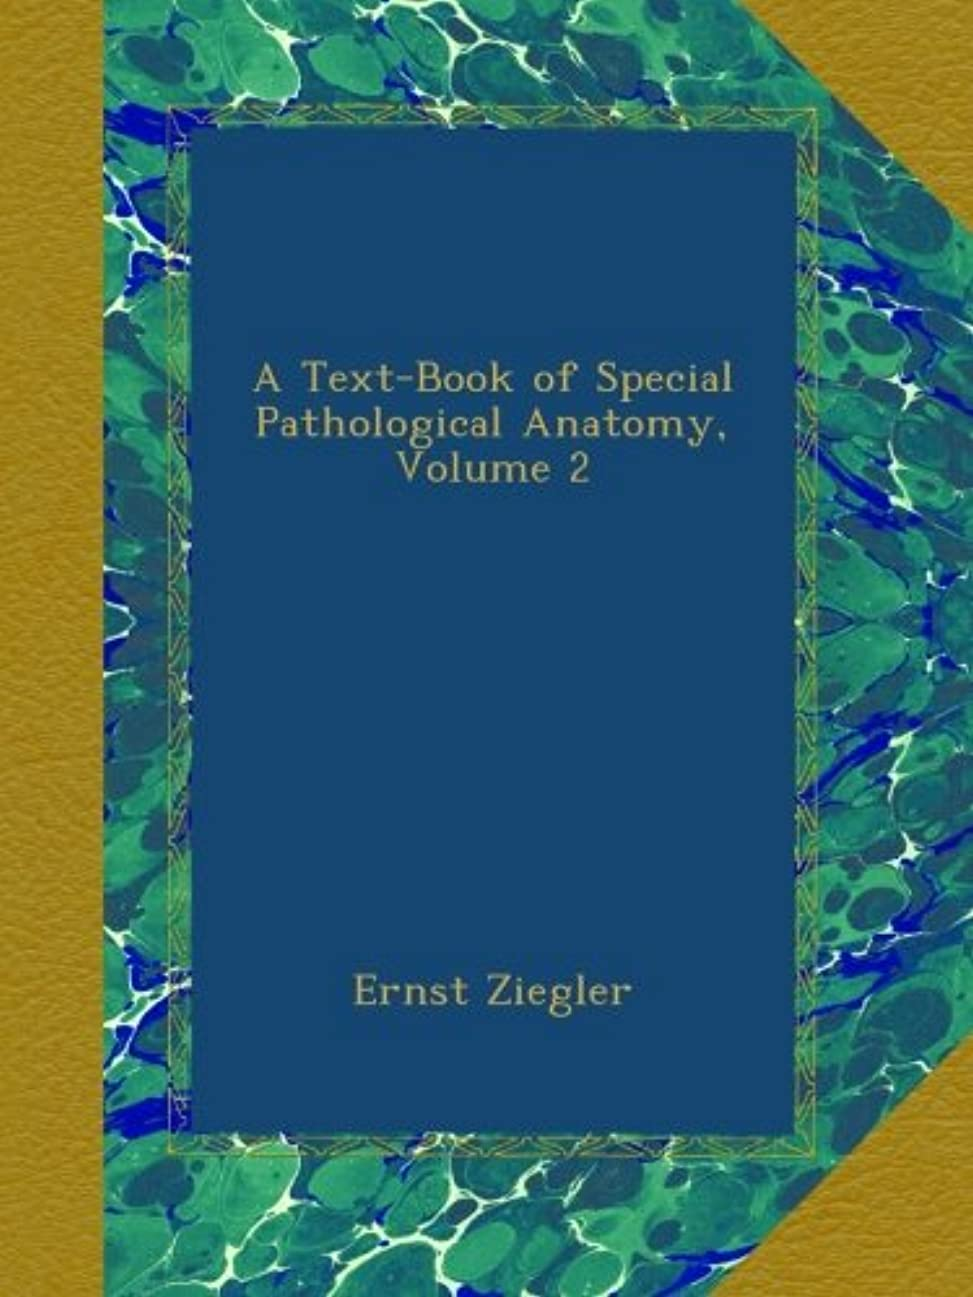 A Text-Book of Special Pathological Anatomy, Volume 2